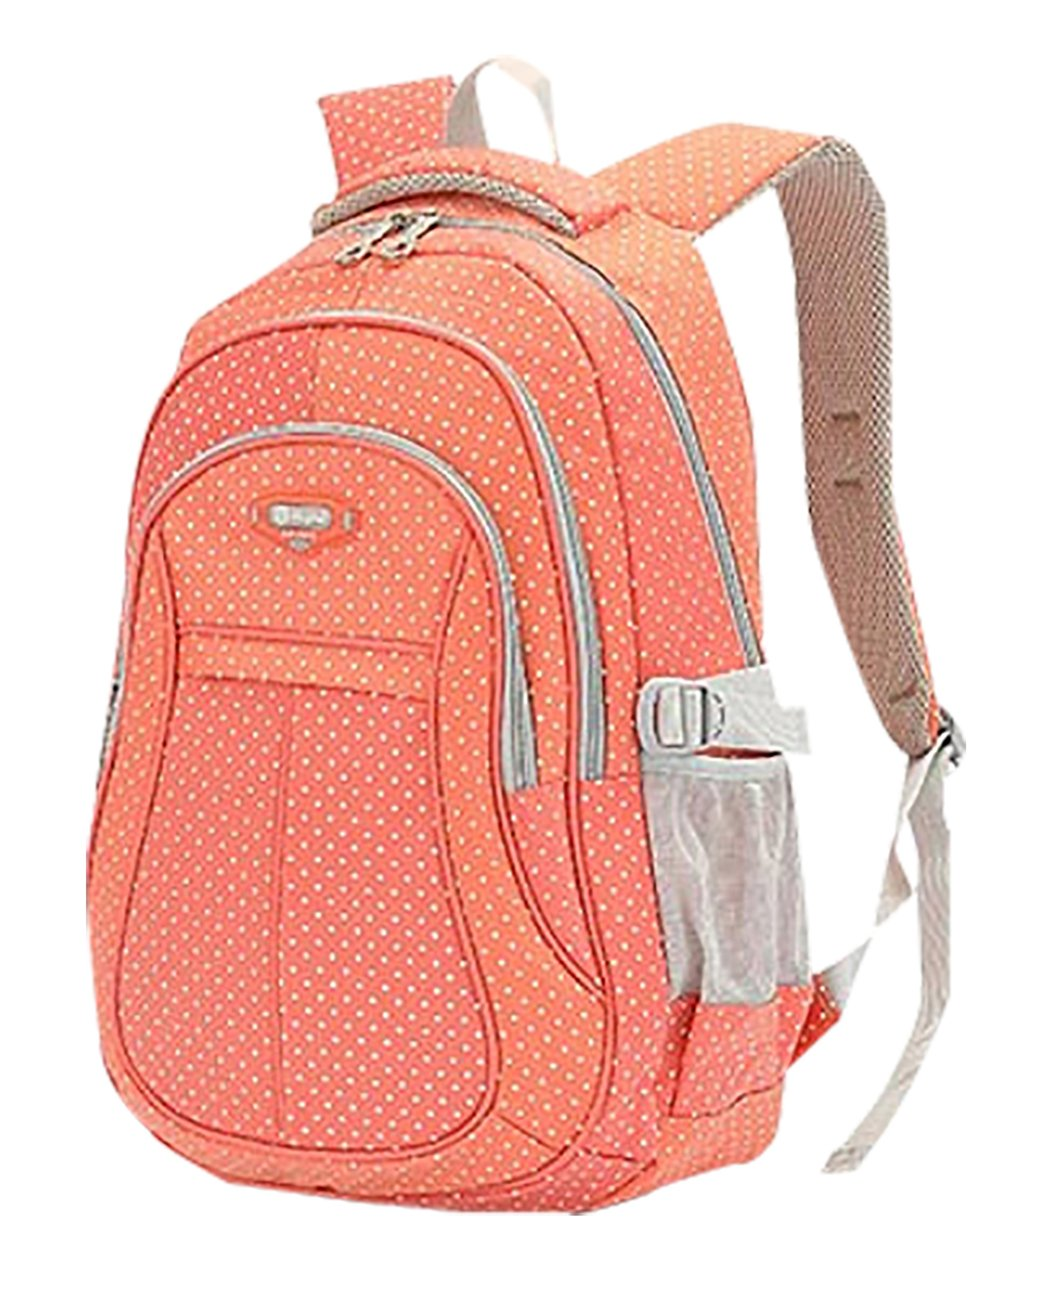 [JiaYou]JiaYou Kid Child Multipurpose Dot Backpack School Bag USXB106D1 [並行輸入品] B013LO8HVU Orange Large